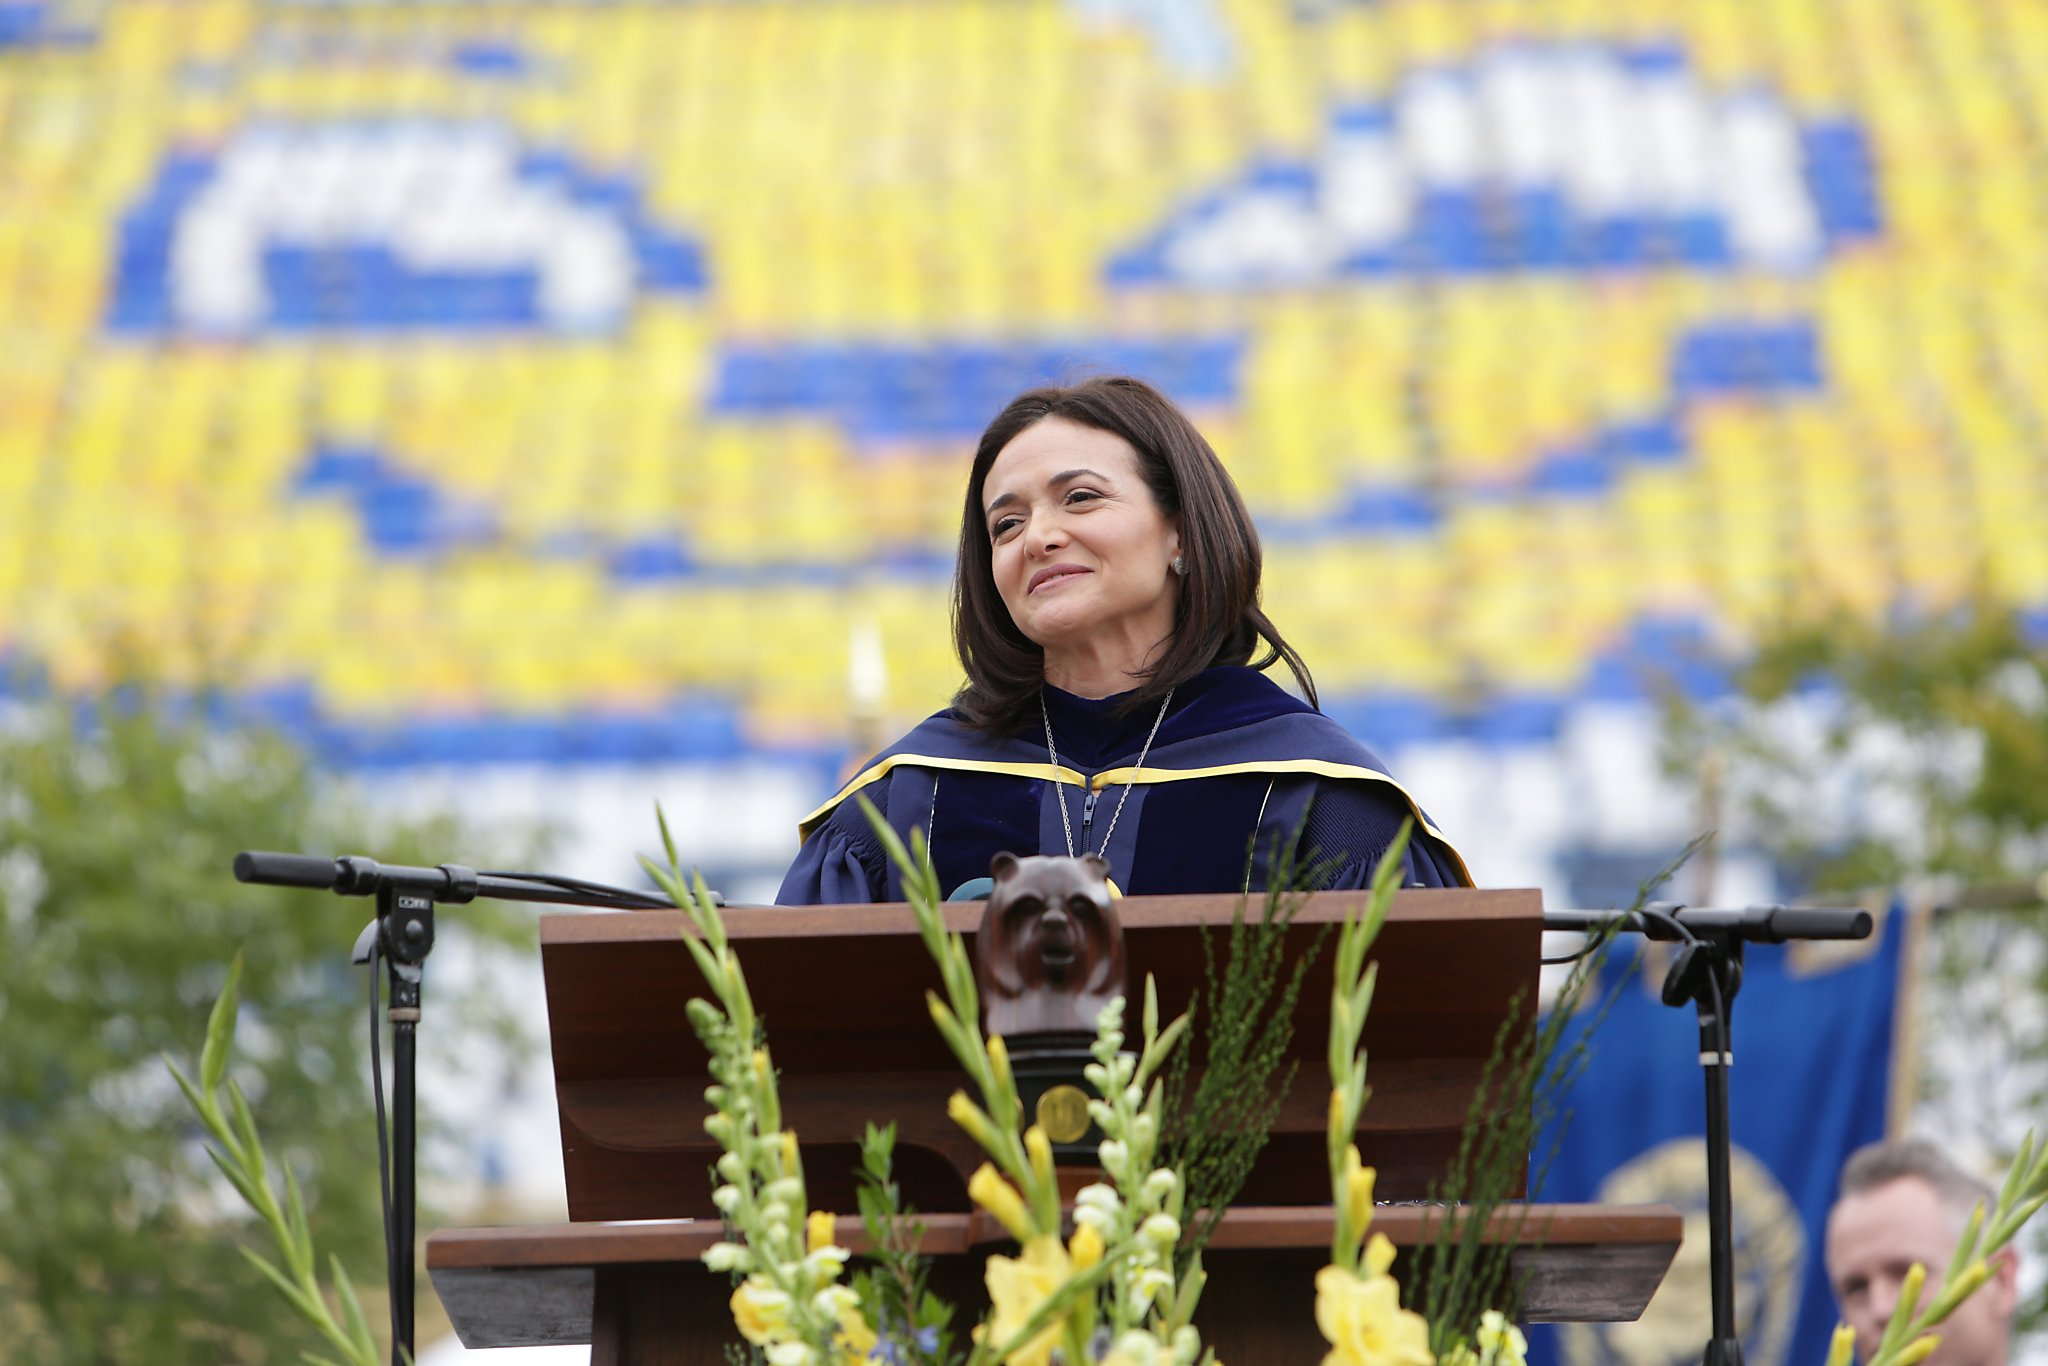 Facebook's Sheryl Sandberg urges Cal graduates to be resilient - SFGate